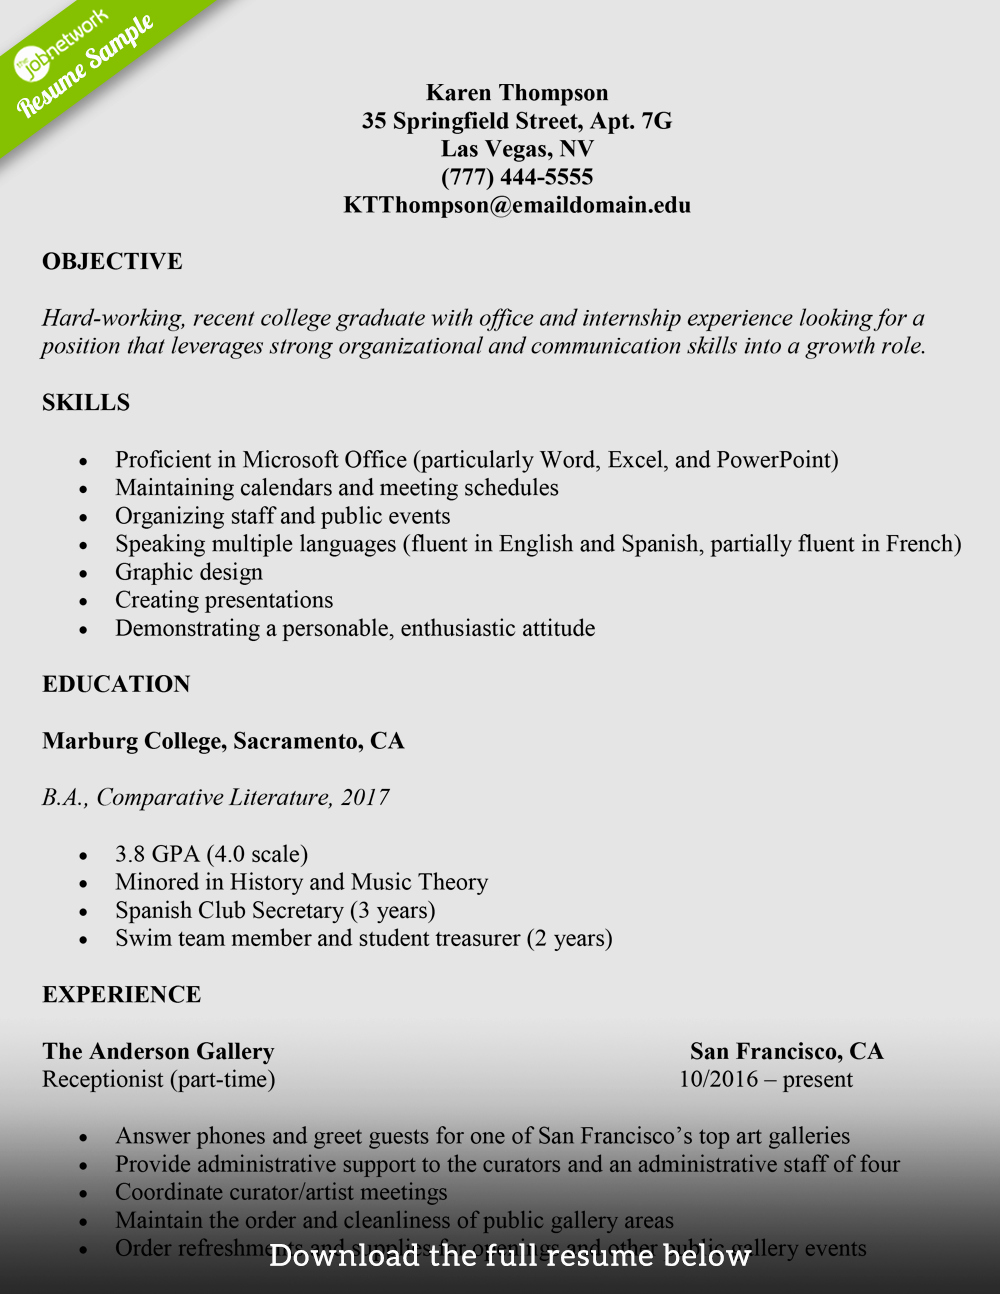 Resume Templates for College Students Unique How to Write A College Student Resume with Examples